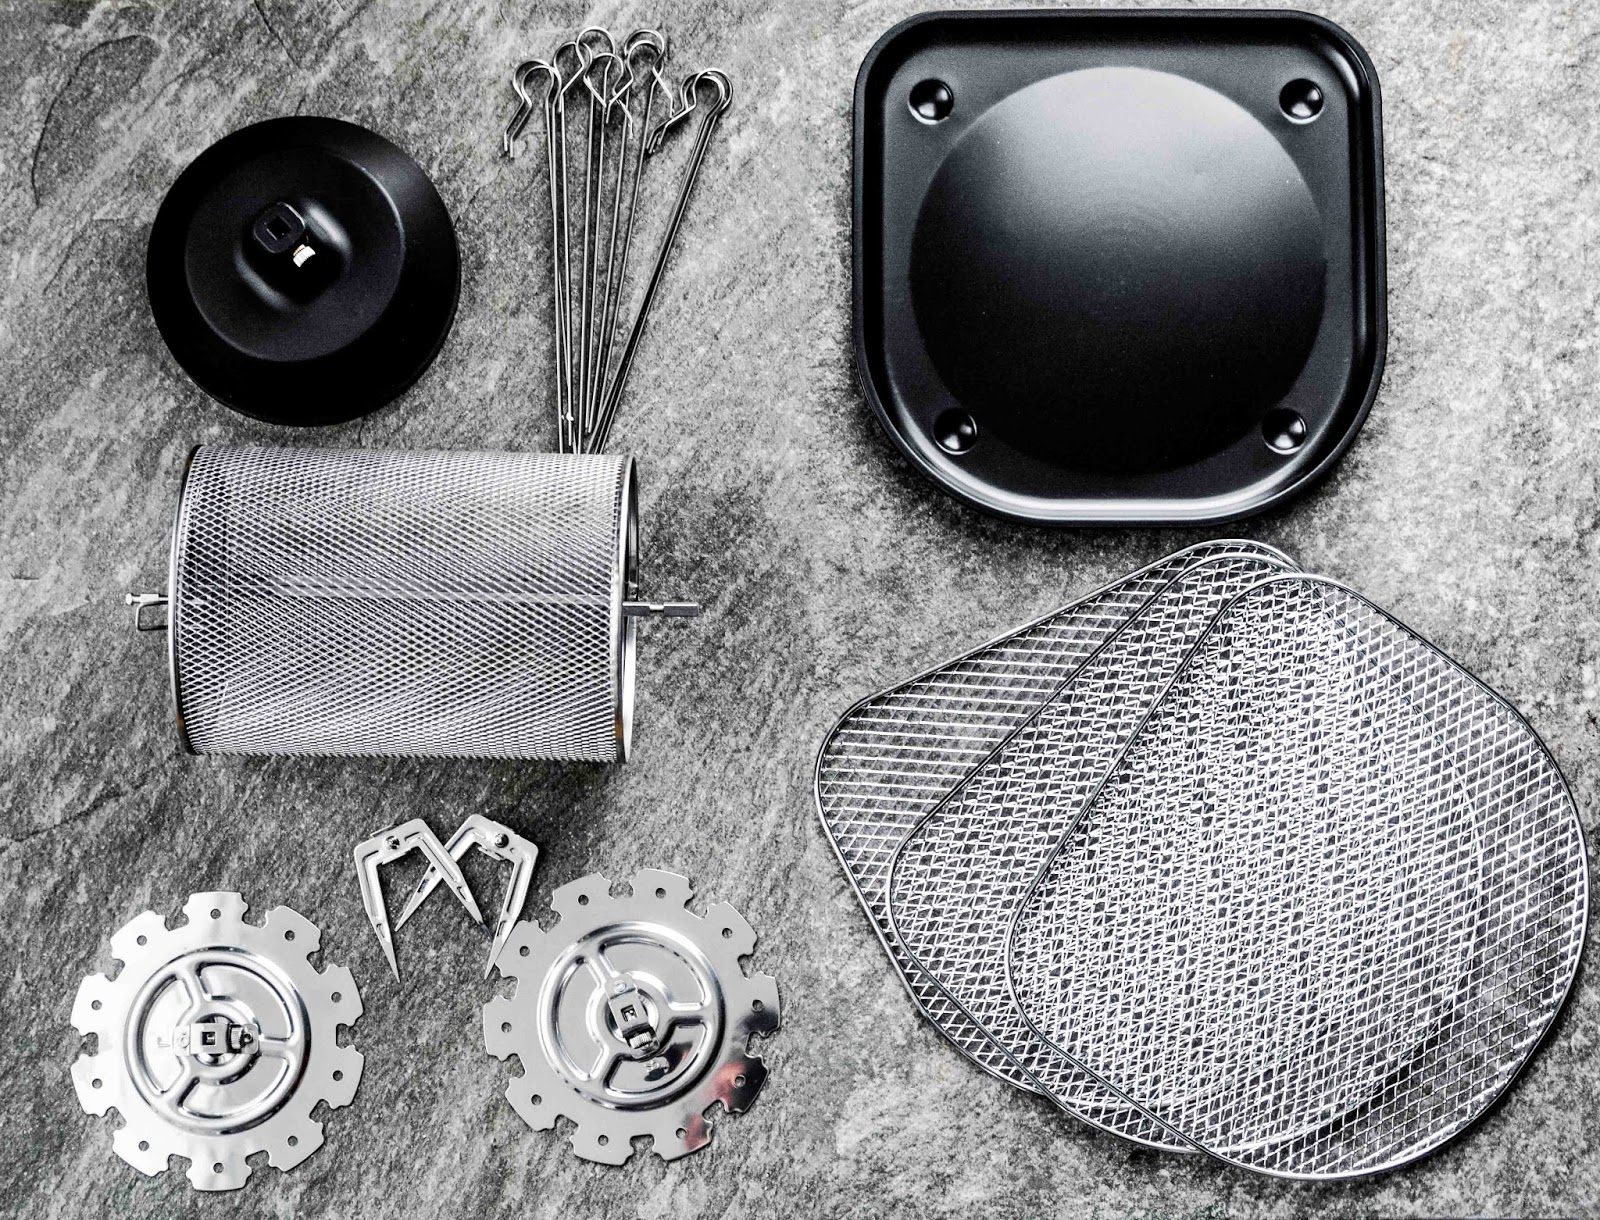 Power AirFryer Oven Accessories